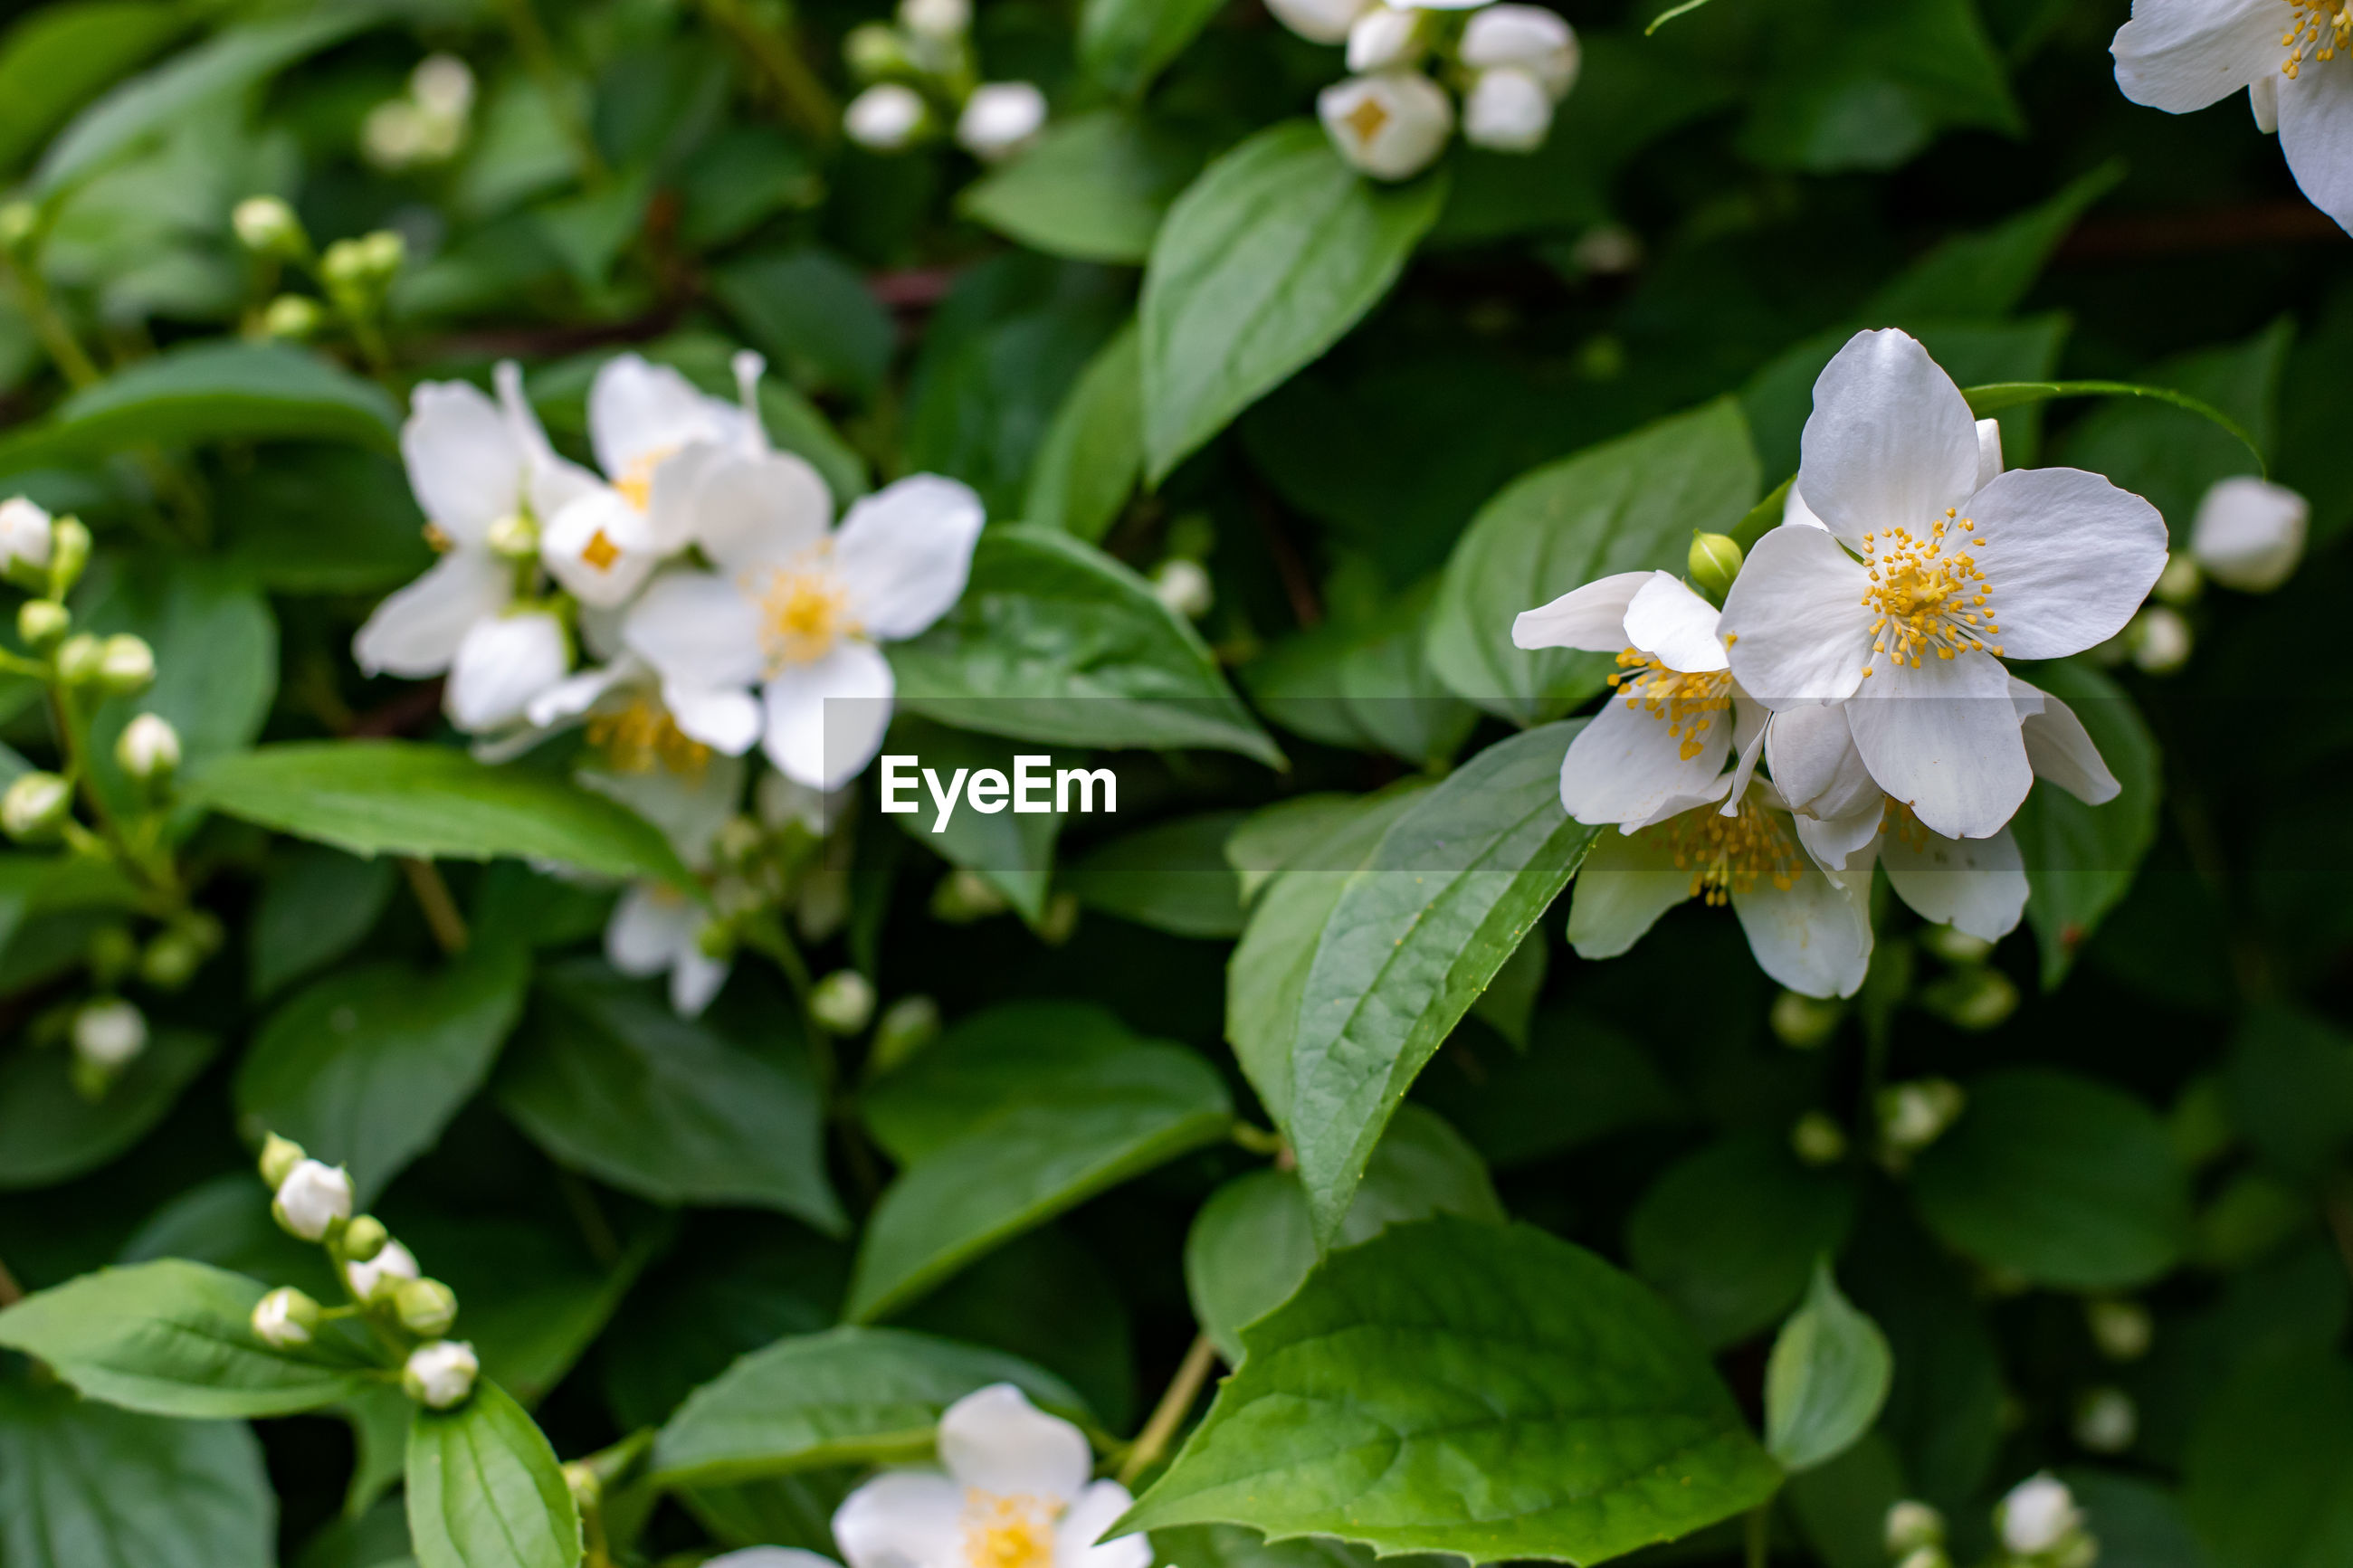 CLOSE-UP OF WHITE FLOWERING PLANT WITH LEAVES